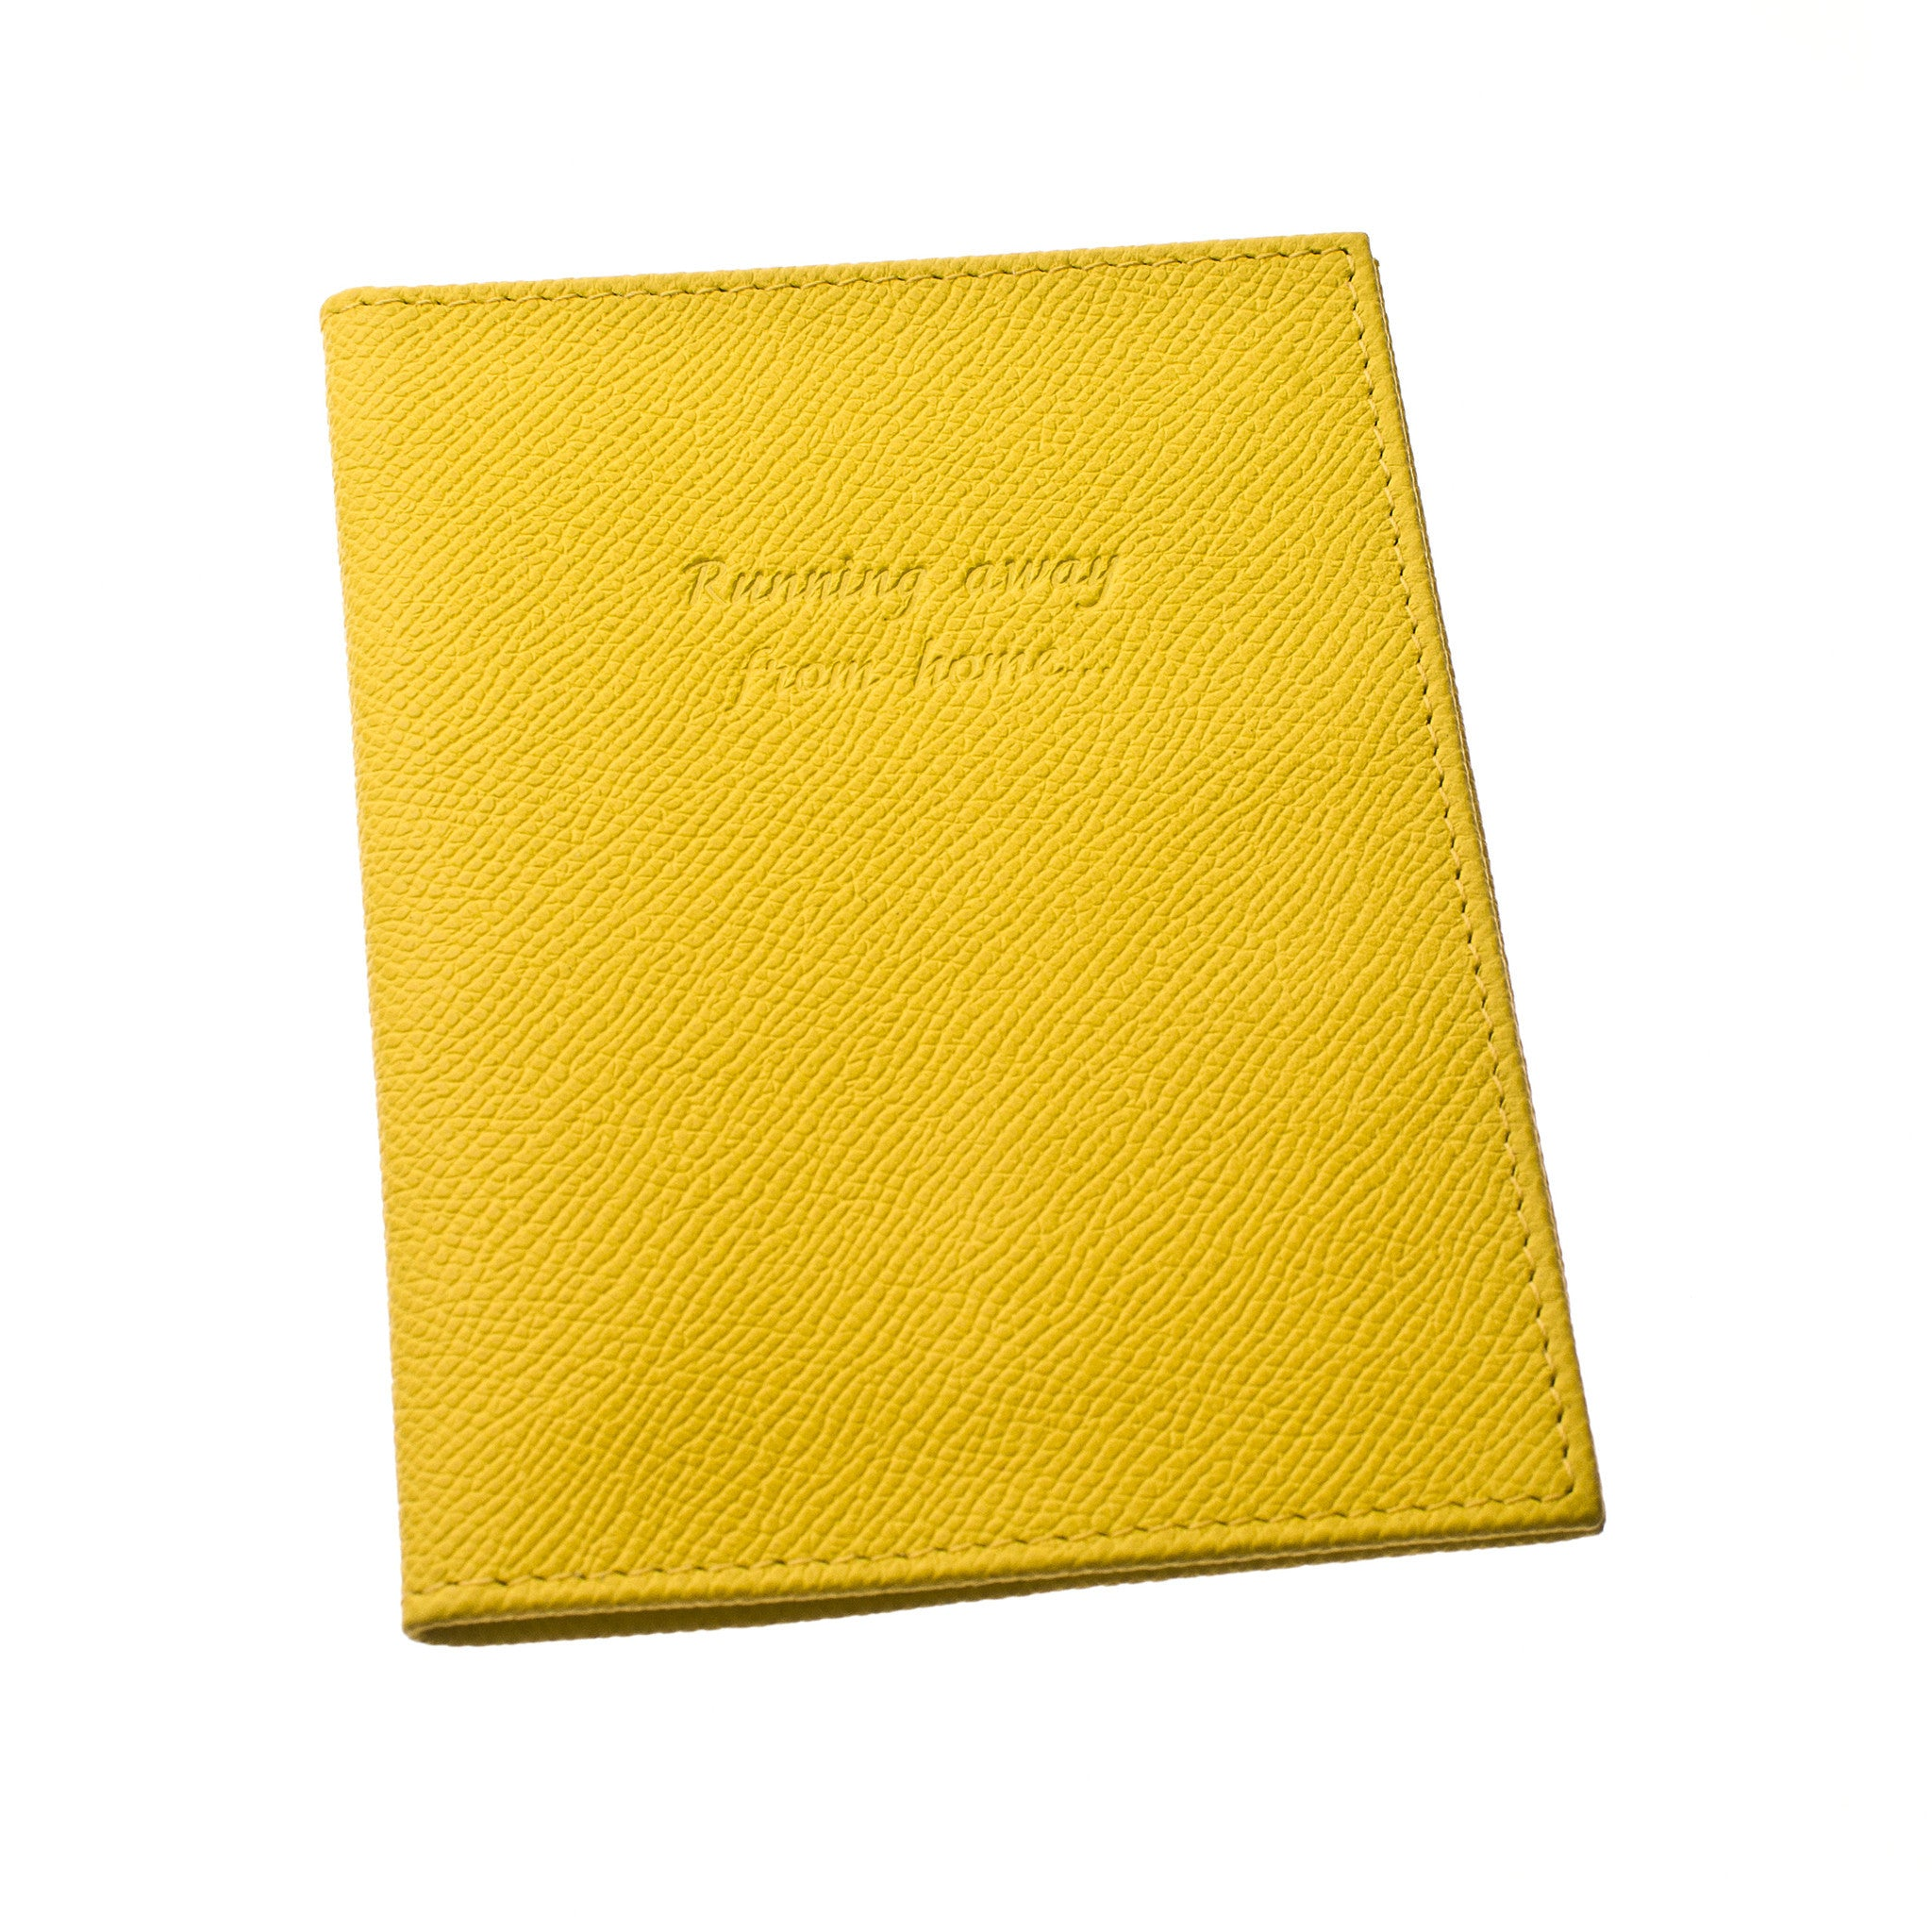 Classic Passport Cover ~ Sunshine Yellow Genuine Leather